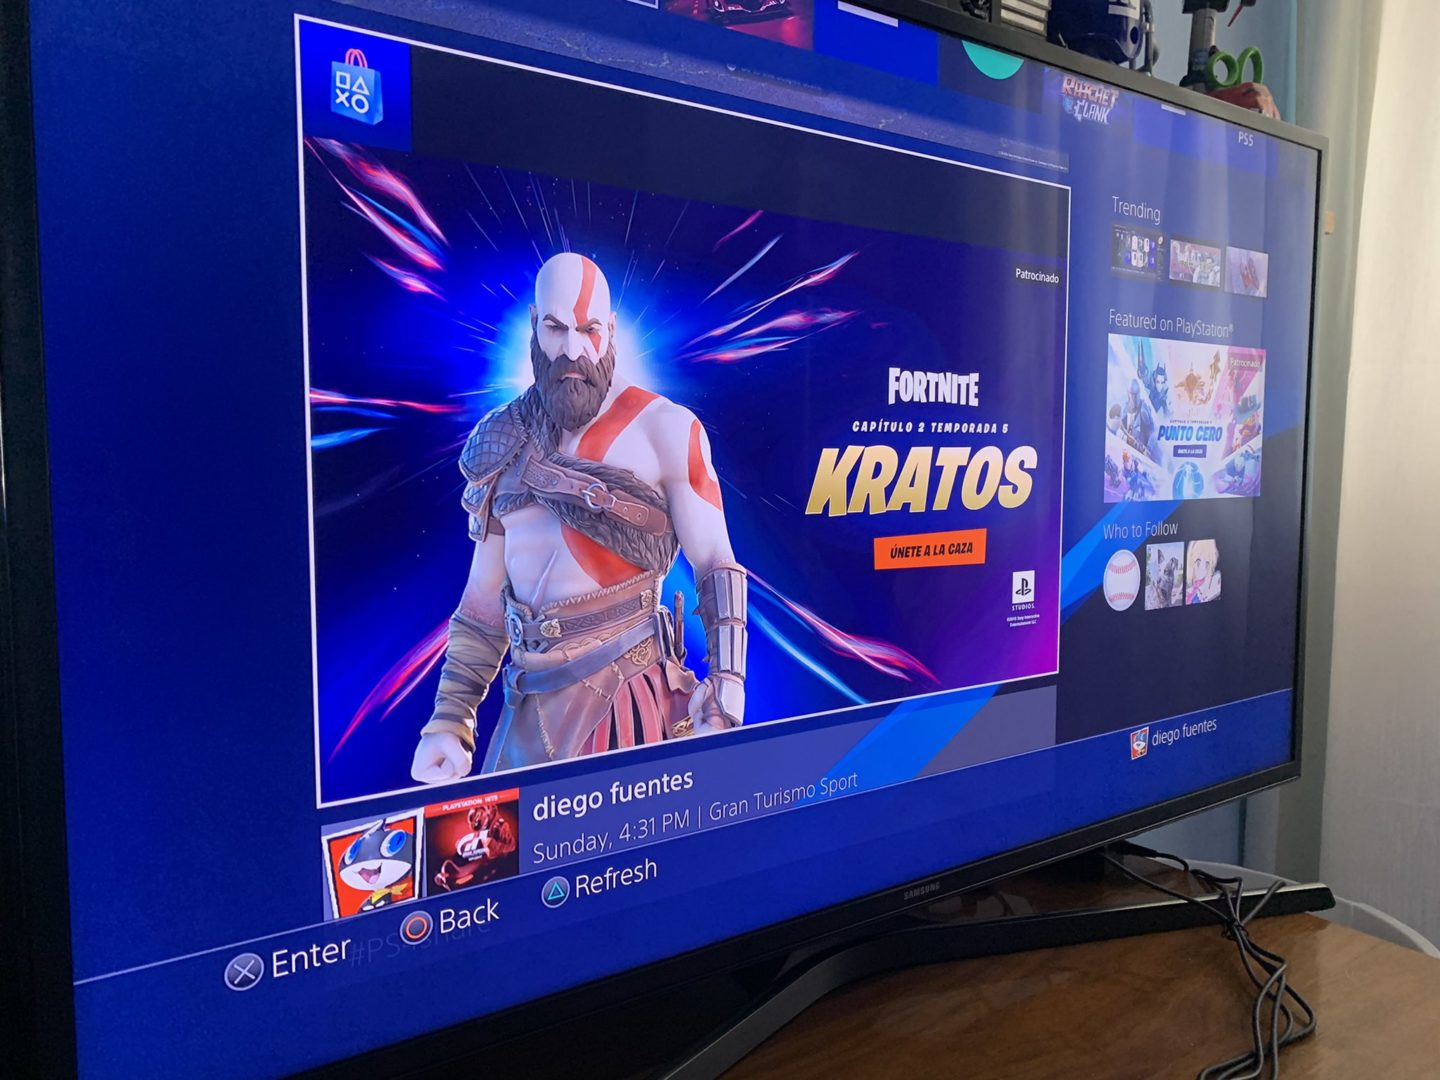 It Sure Seems Like Kratos Is Coming To Fortnite Egm As with previous battle pass achievements, the fortnite skins. it sure seems like kratos is coming to